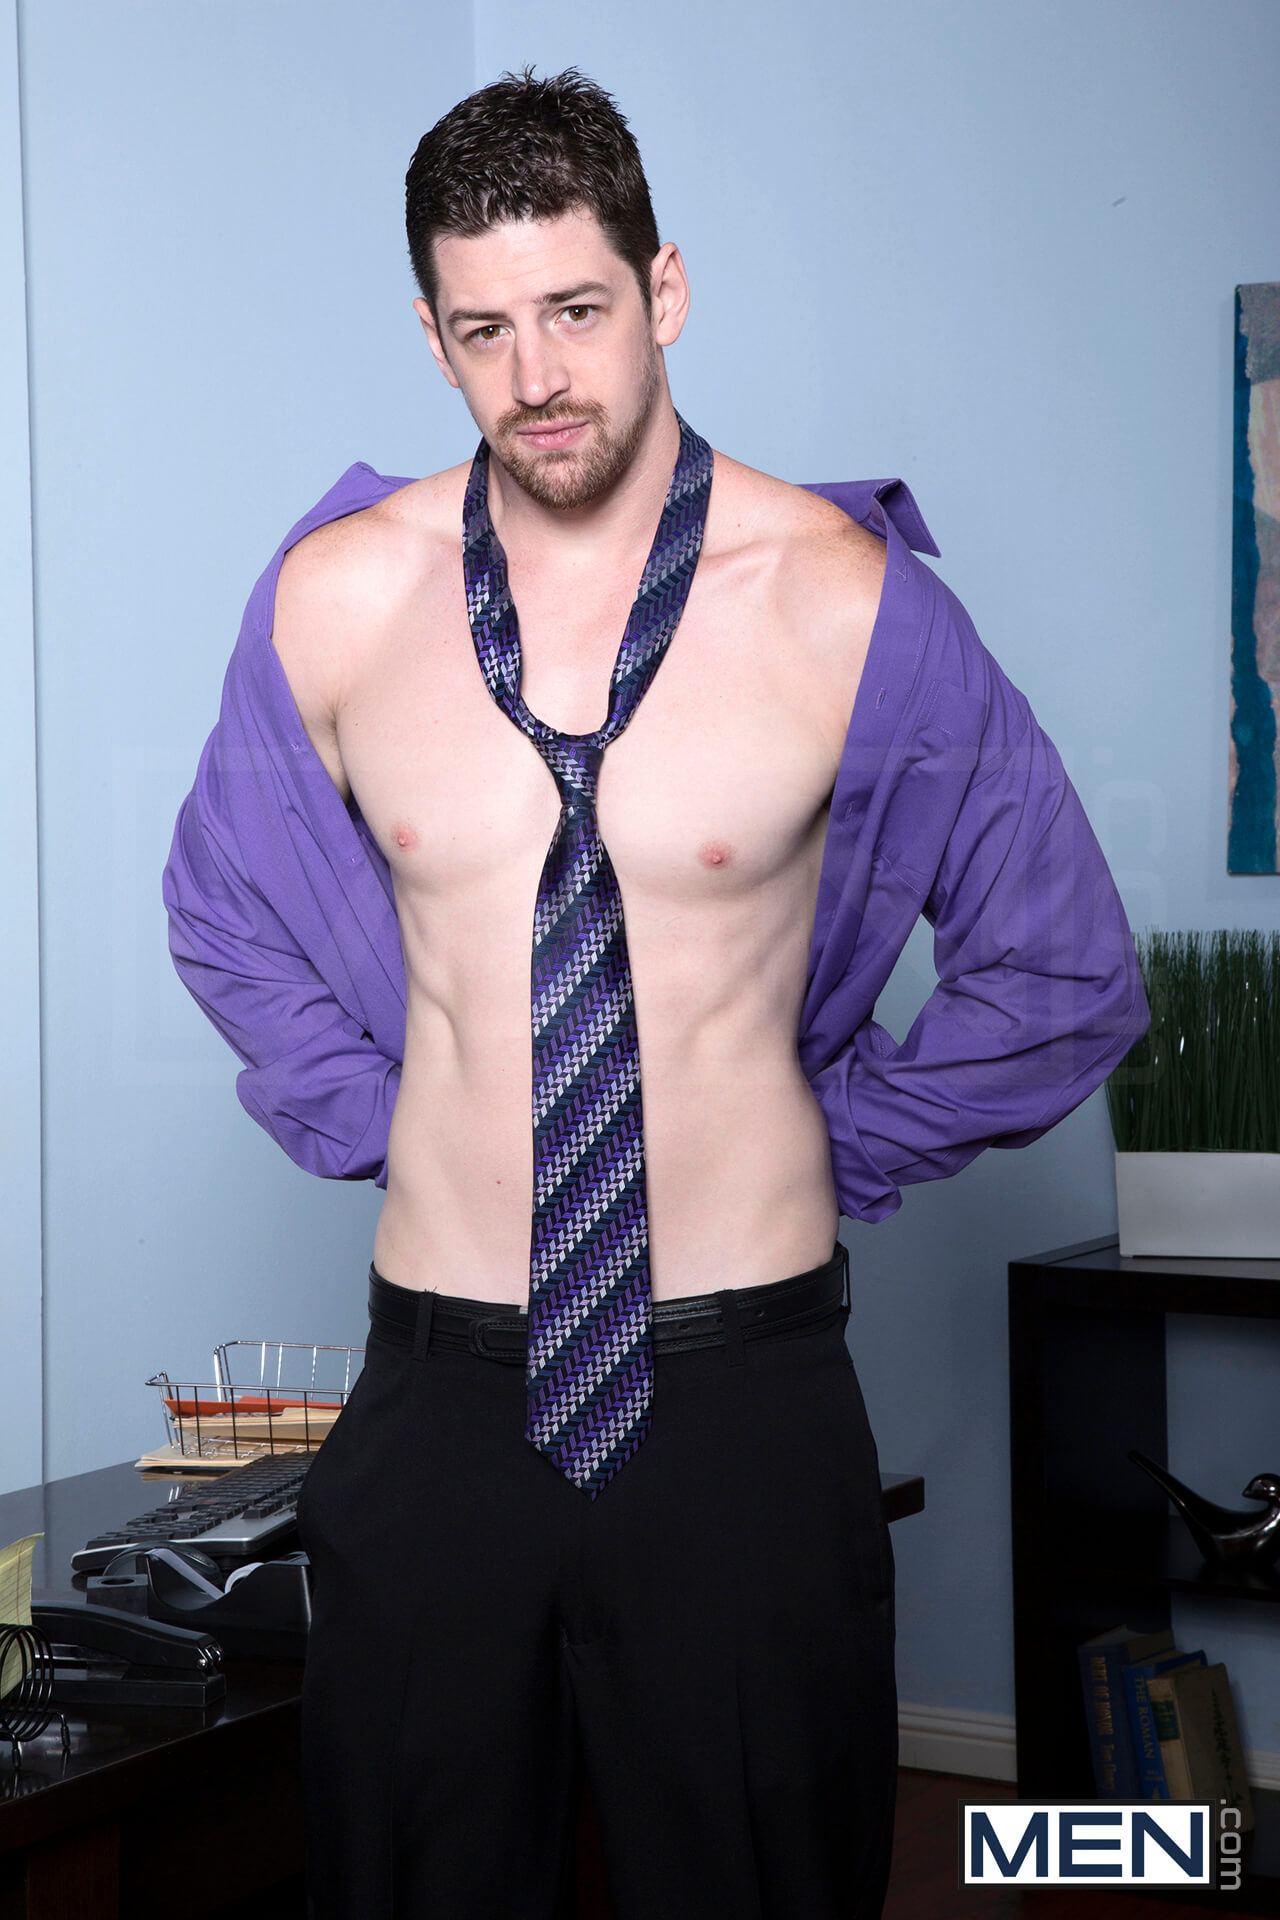 men the gay office the sales call andrew stark chris bines rocco reed gay porn blog image 1